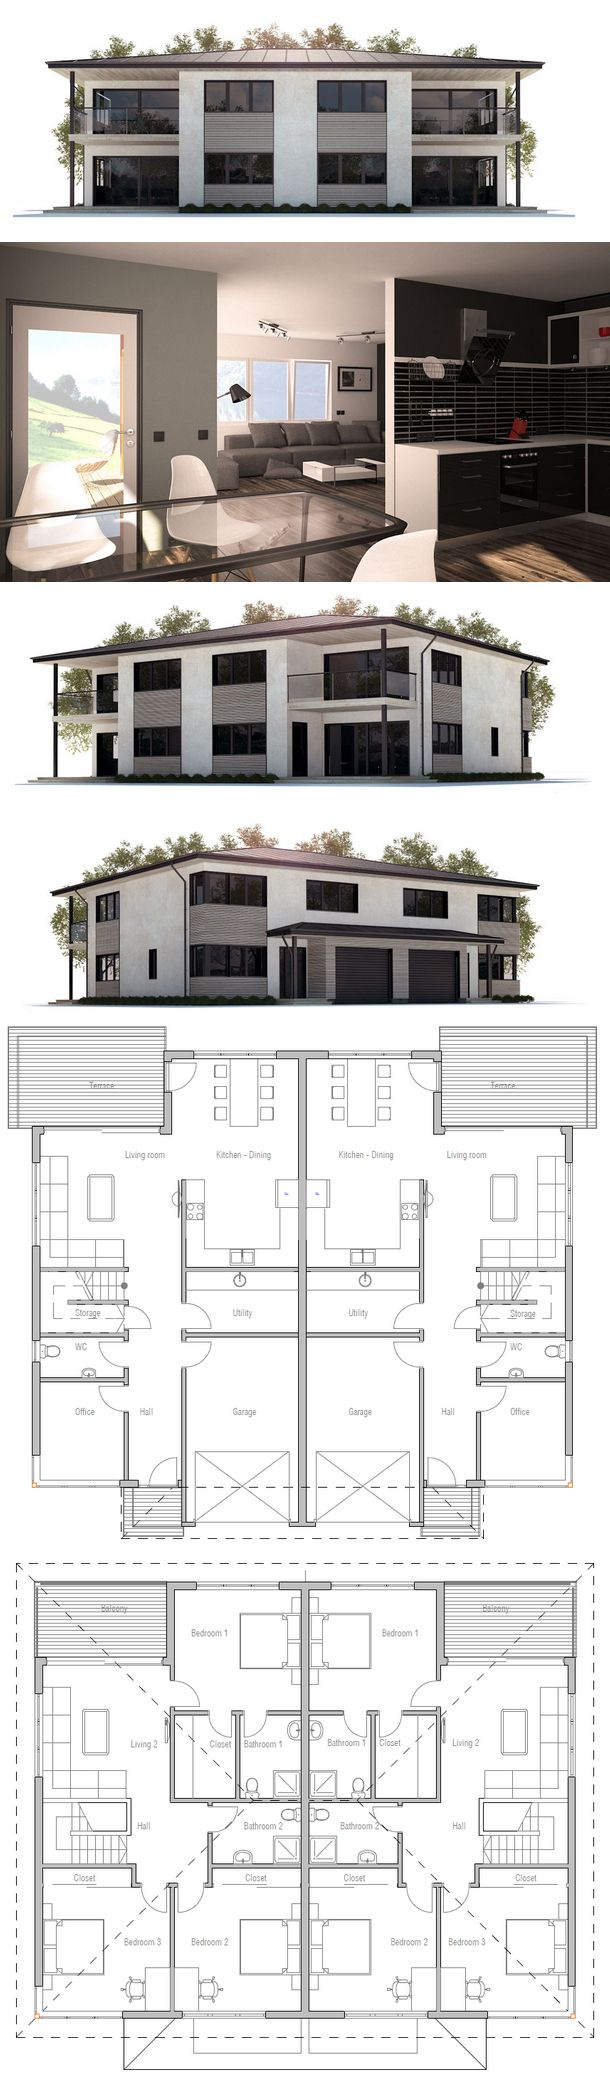 best 25 duplex house plans ideas on pinterest duplex house duplex house plan ch177d from concepthome com more